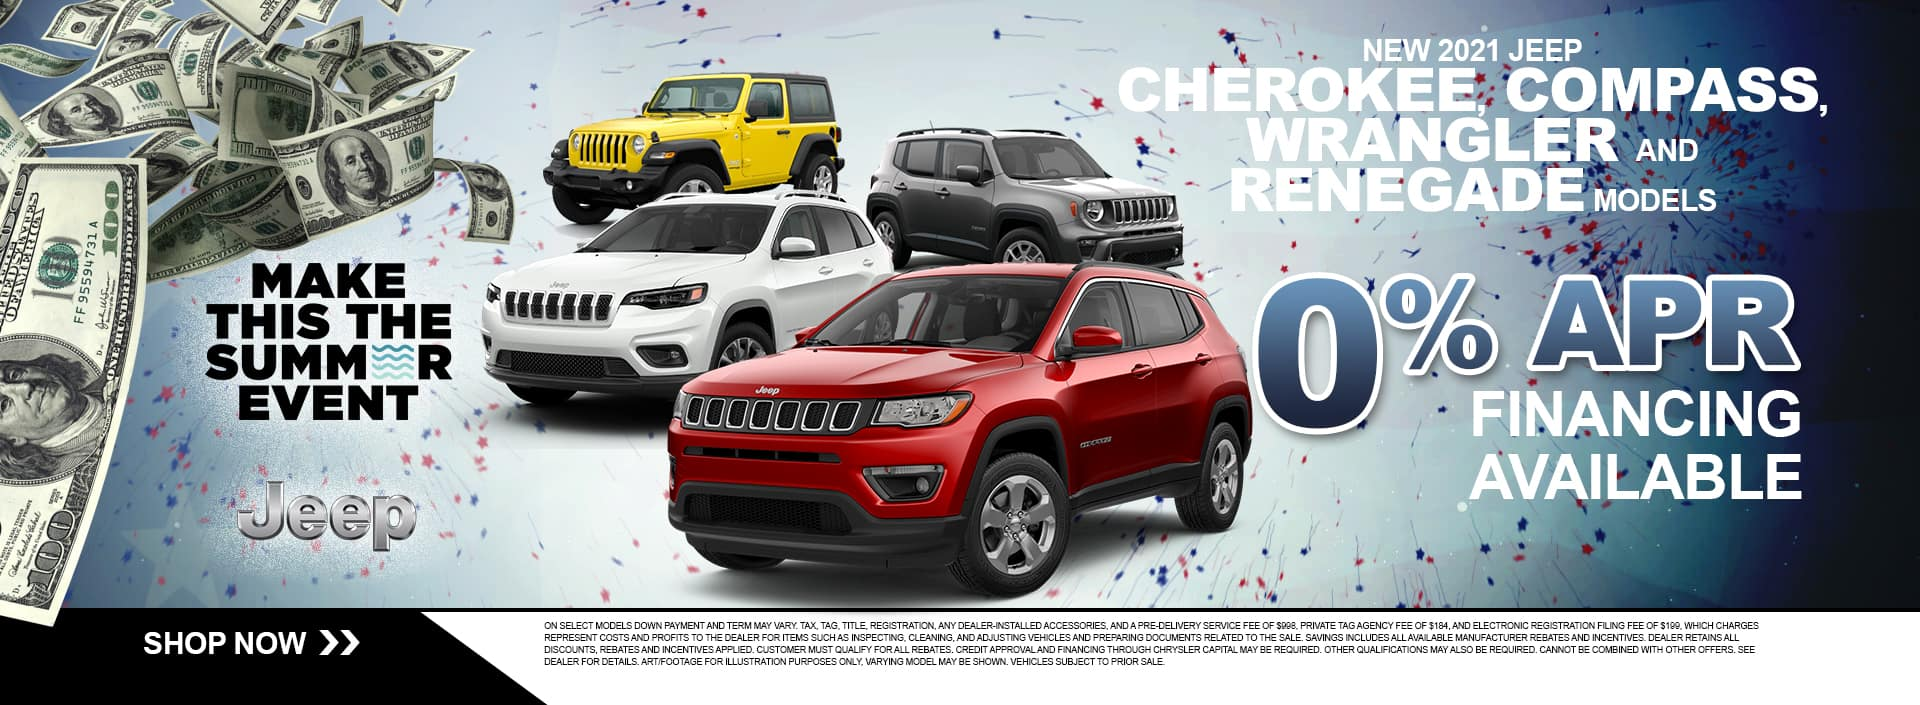 NEW 2021 JEEP CHEROKEE, COMPASS, WRANGLER AND RENEGADE MODELS